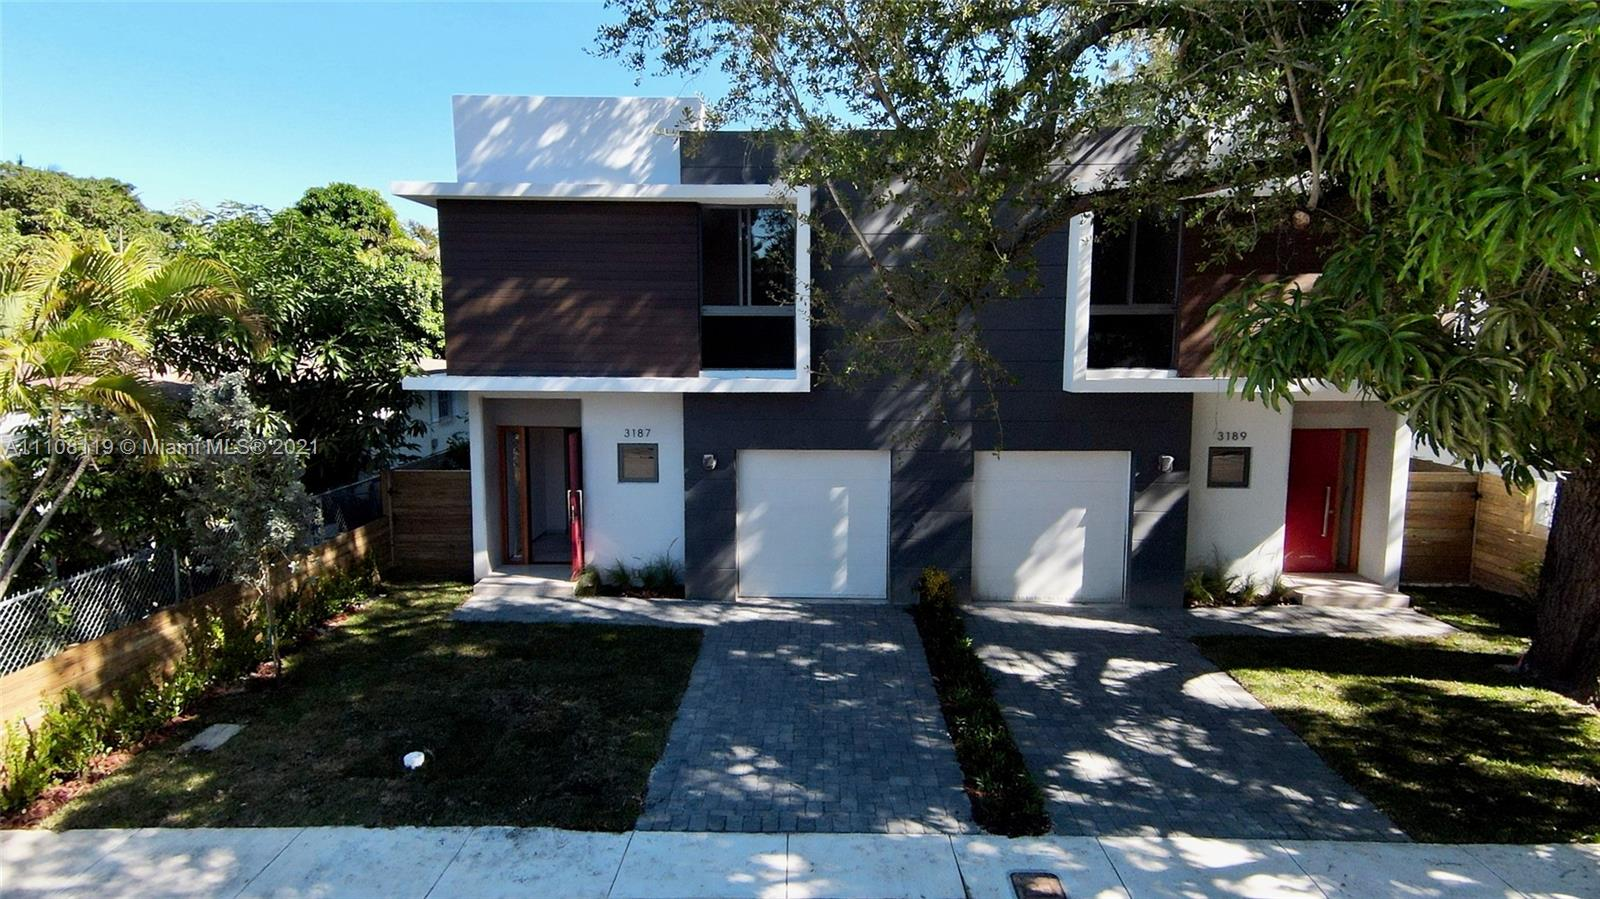 3187  Hibiscus St #3187 For Sale A11108119, FL